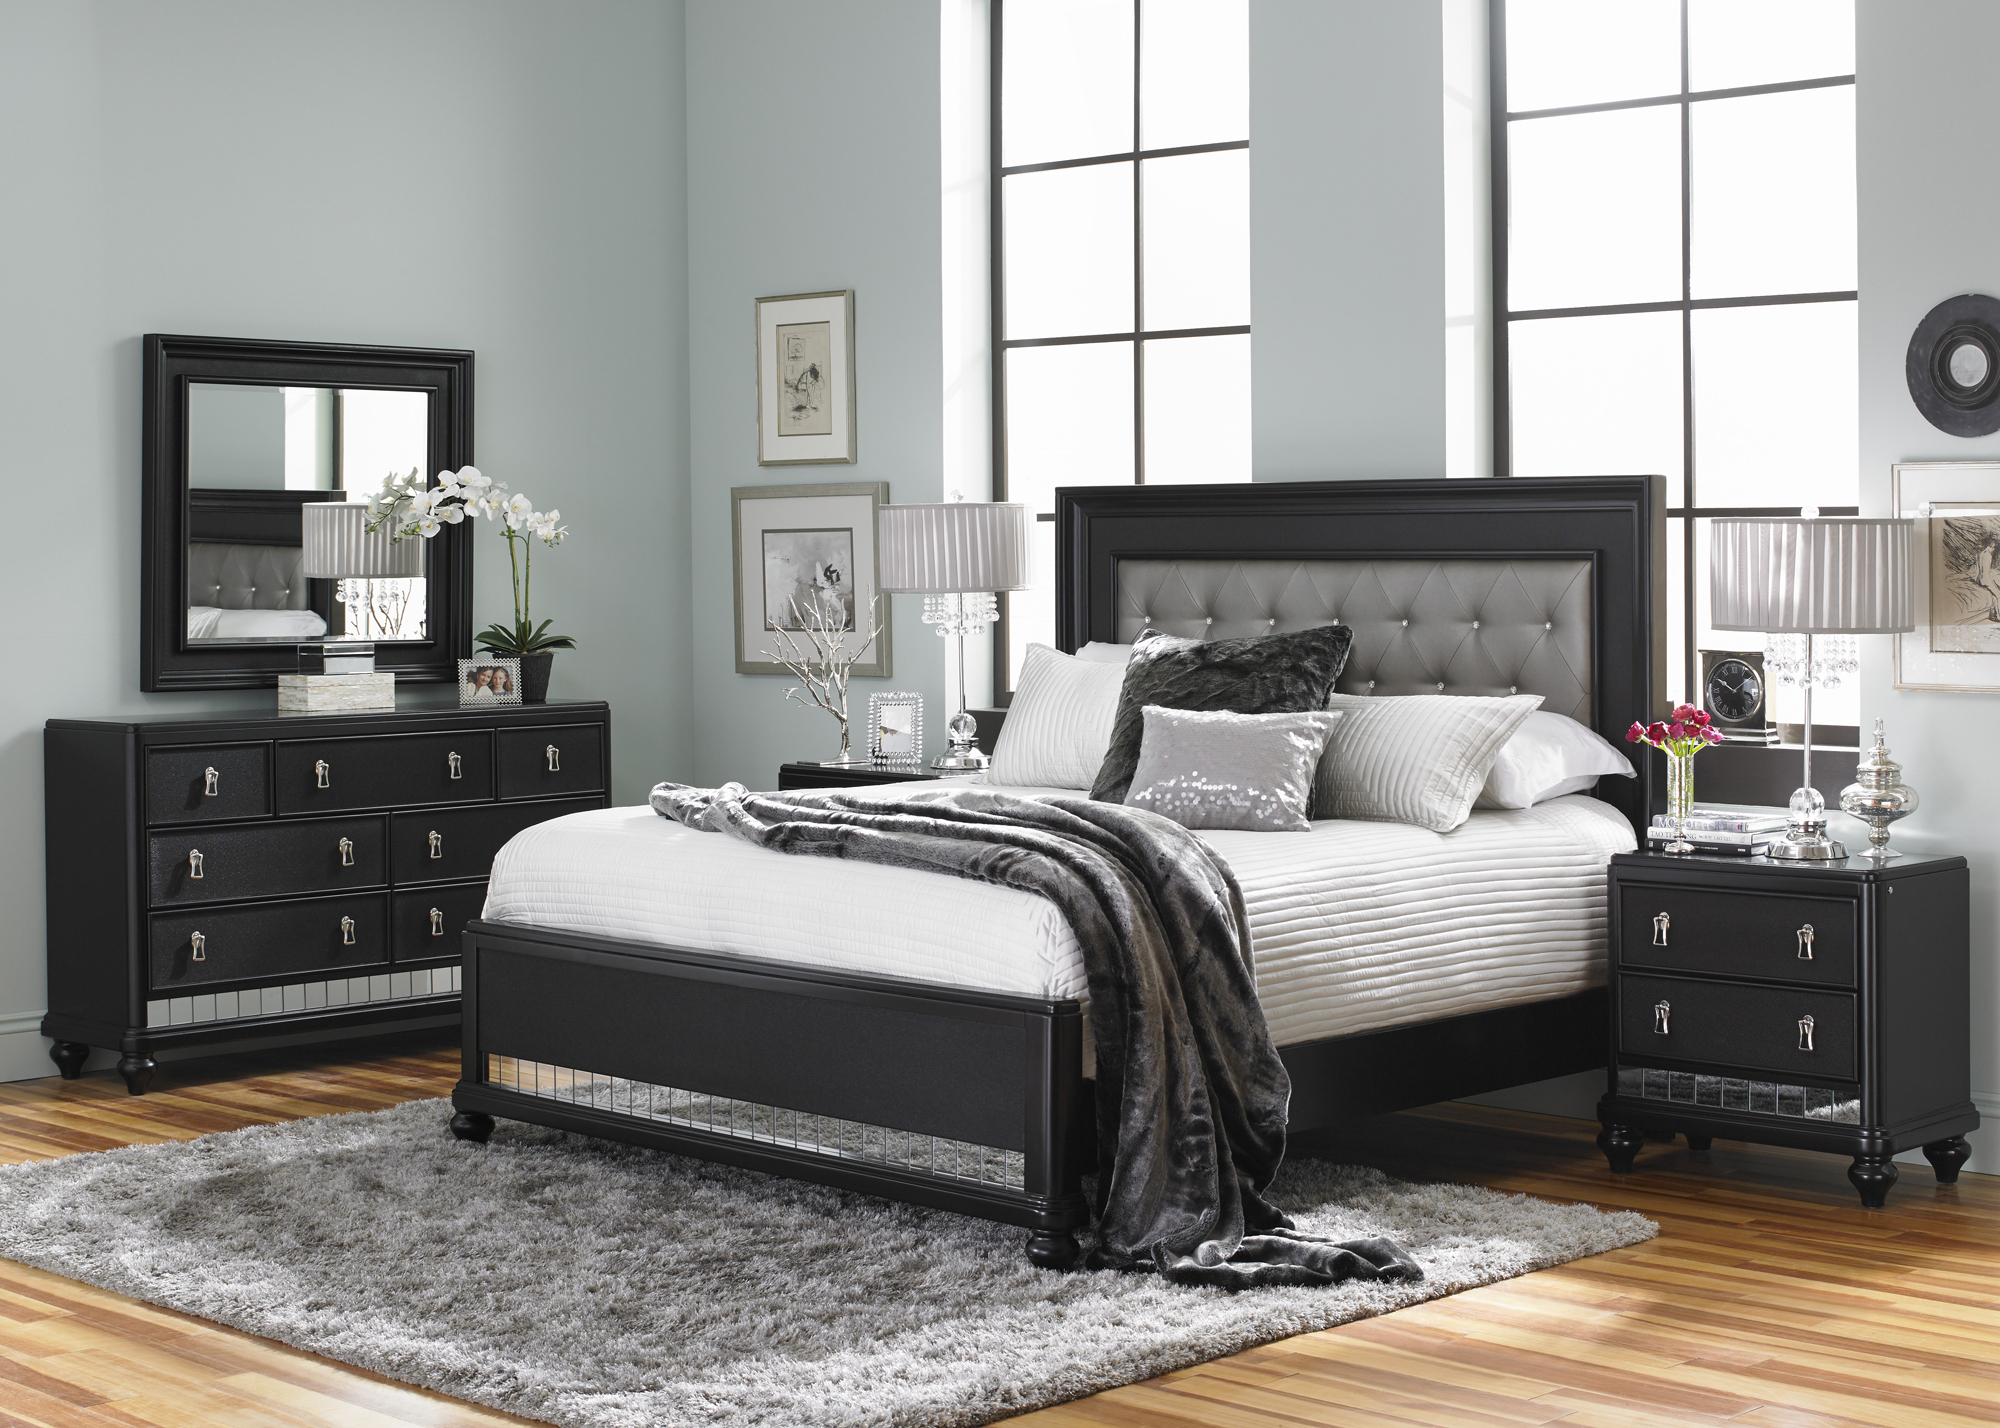 diva tufted trim furniture lawrence king panel headboard bed products item divaking w width height royal samuel threshold